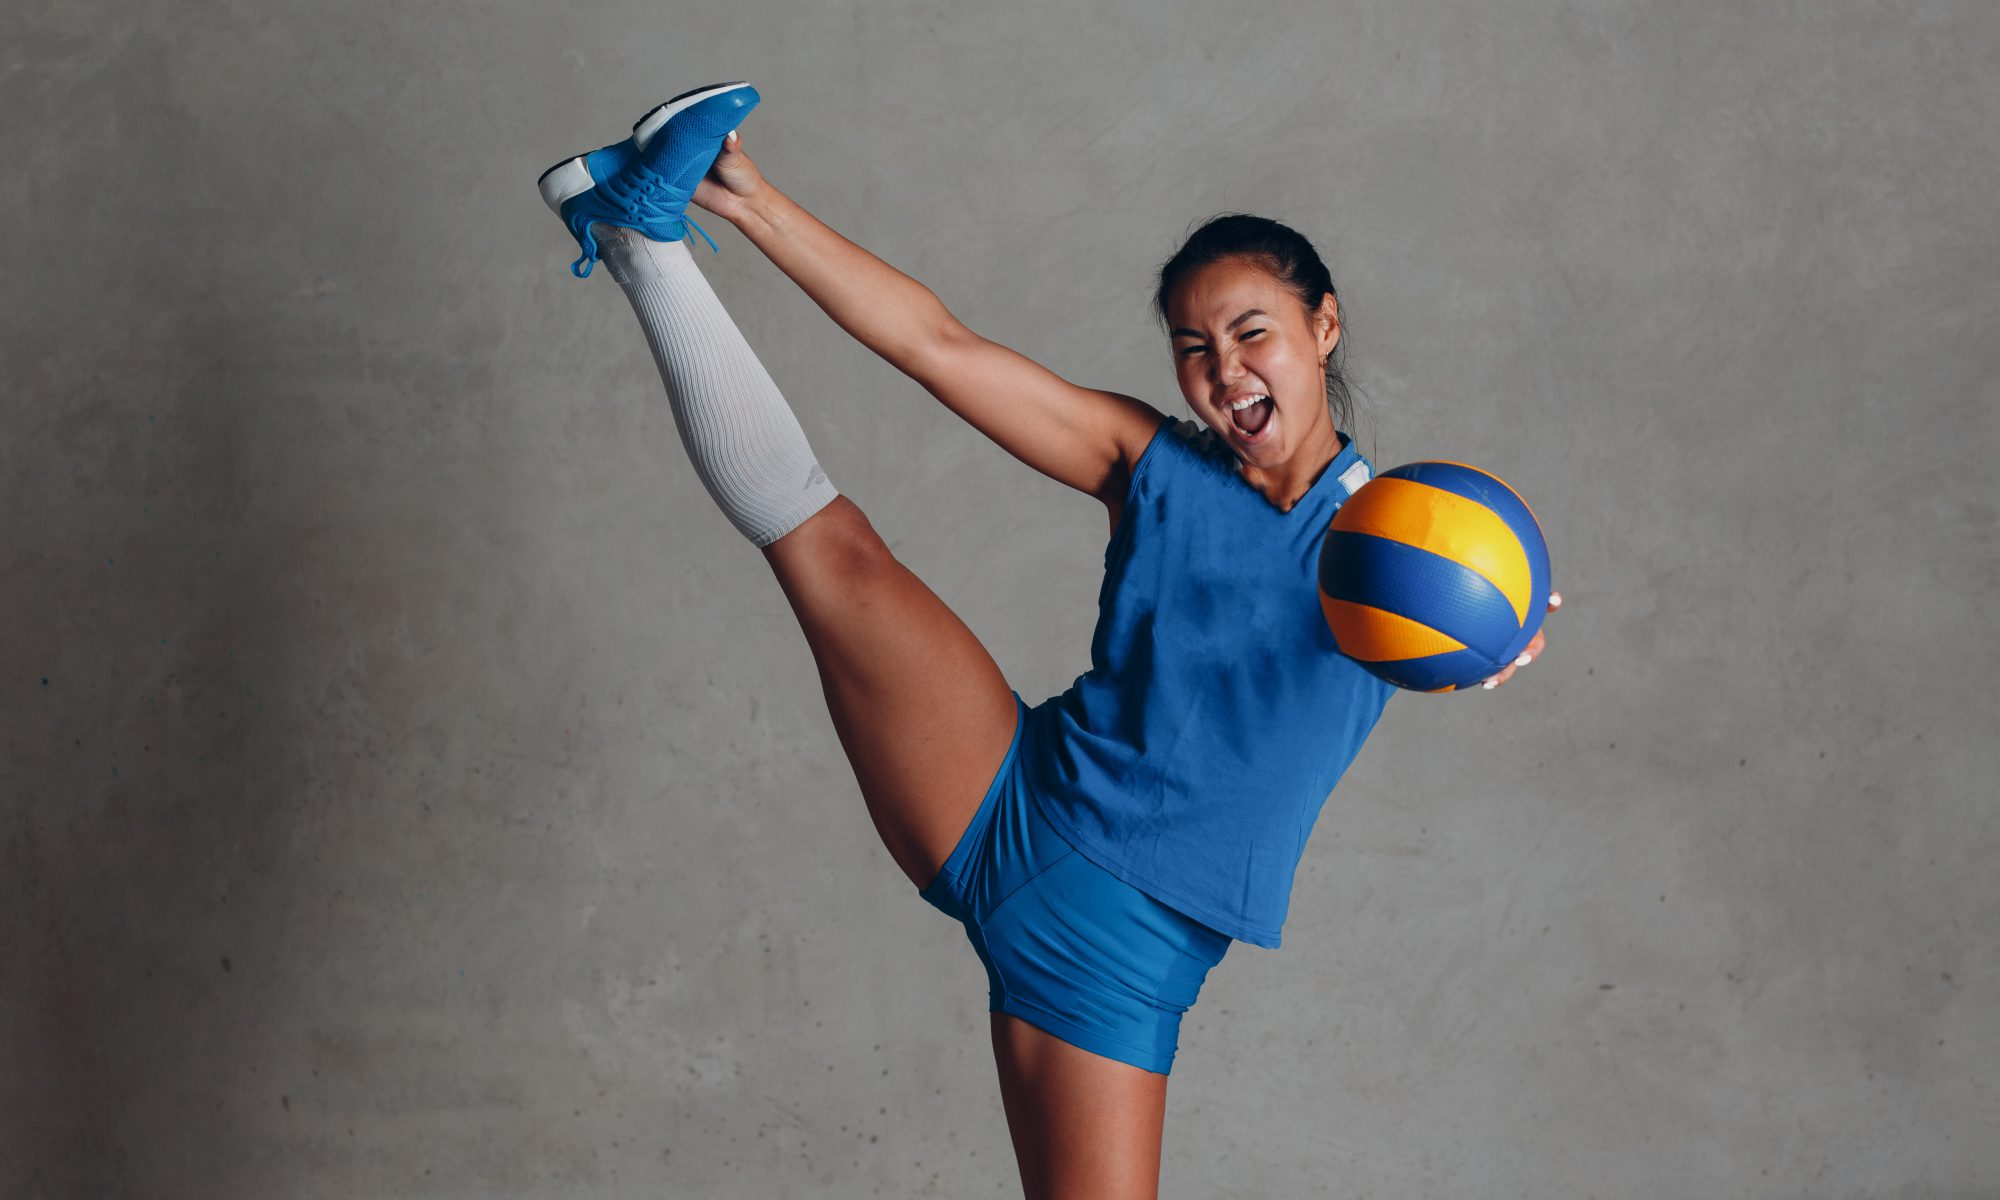 Rep Volleyball Player